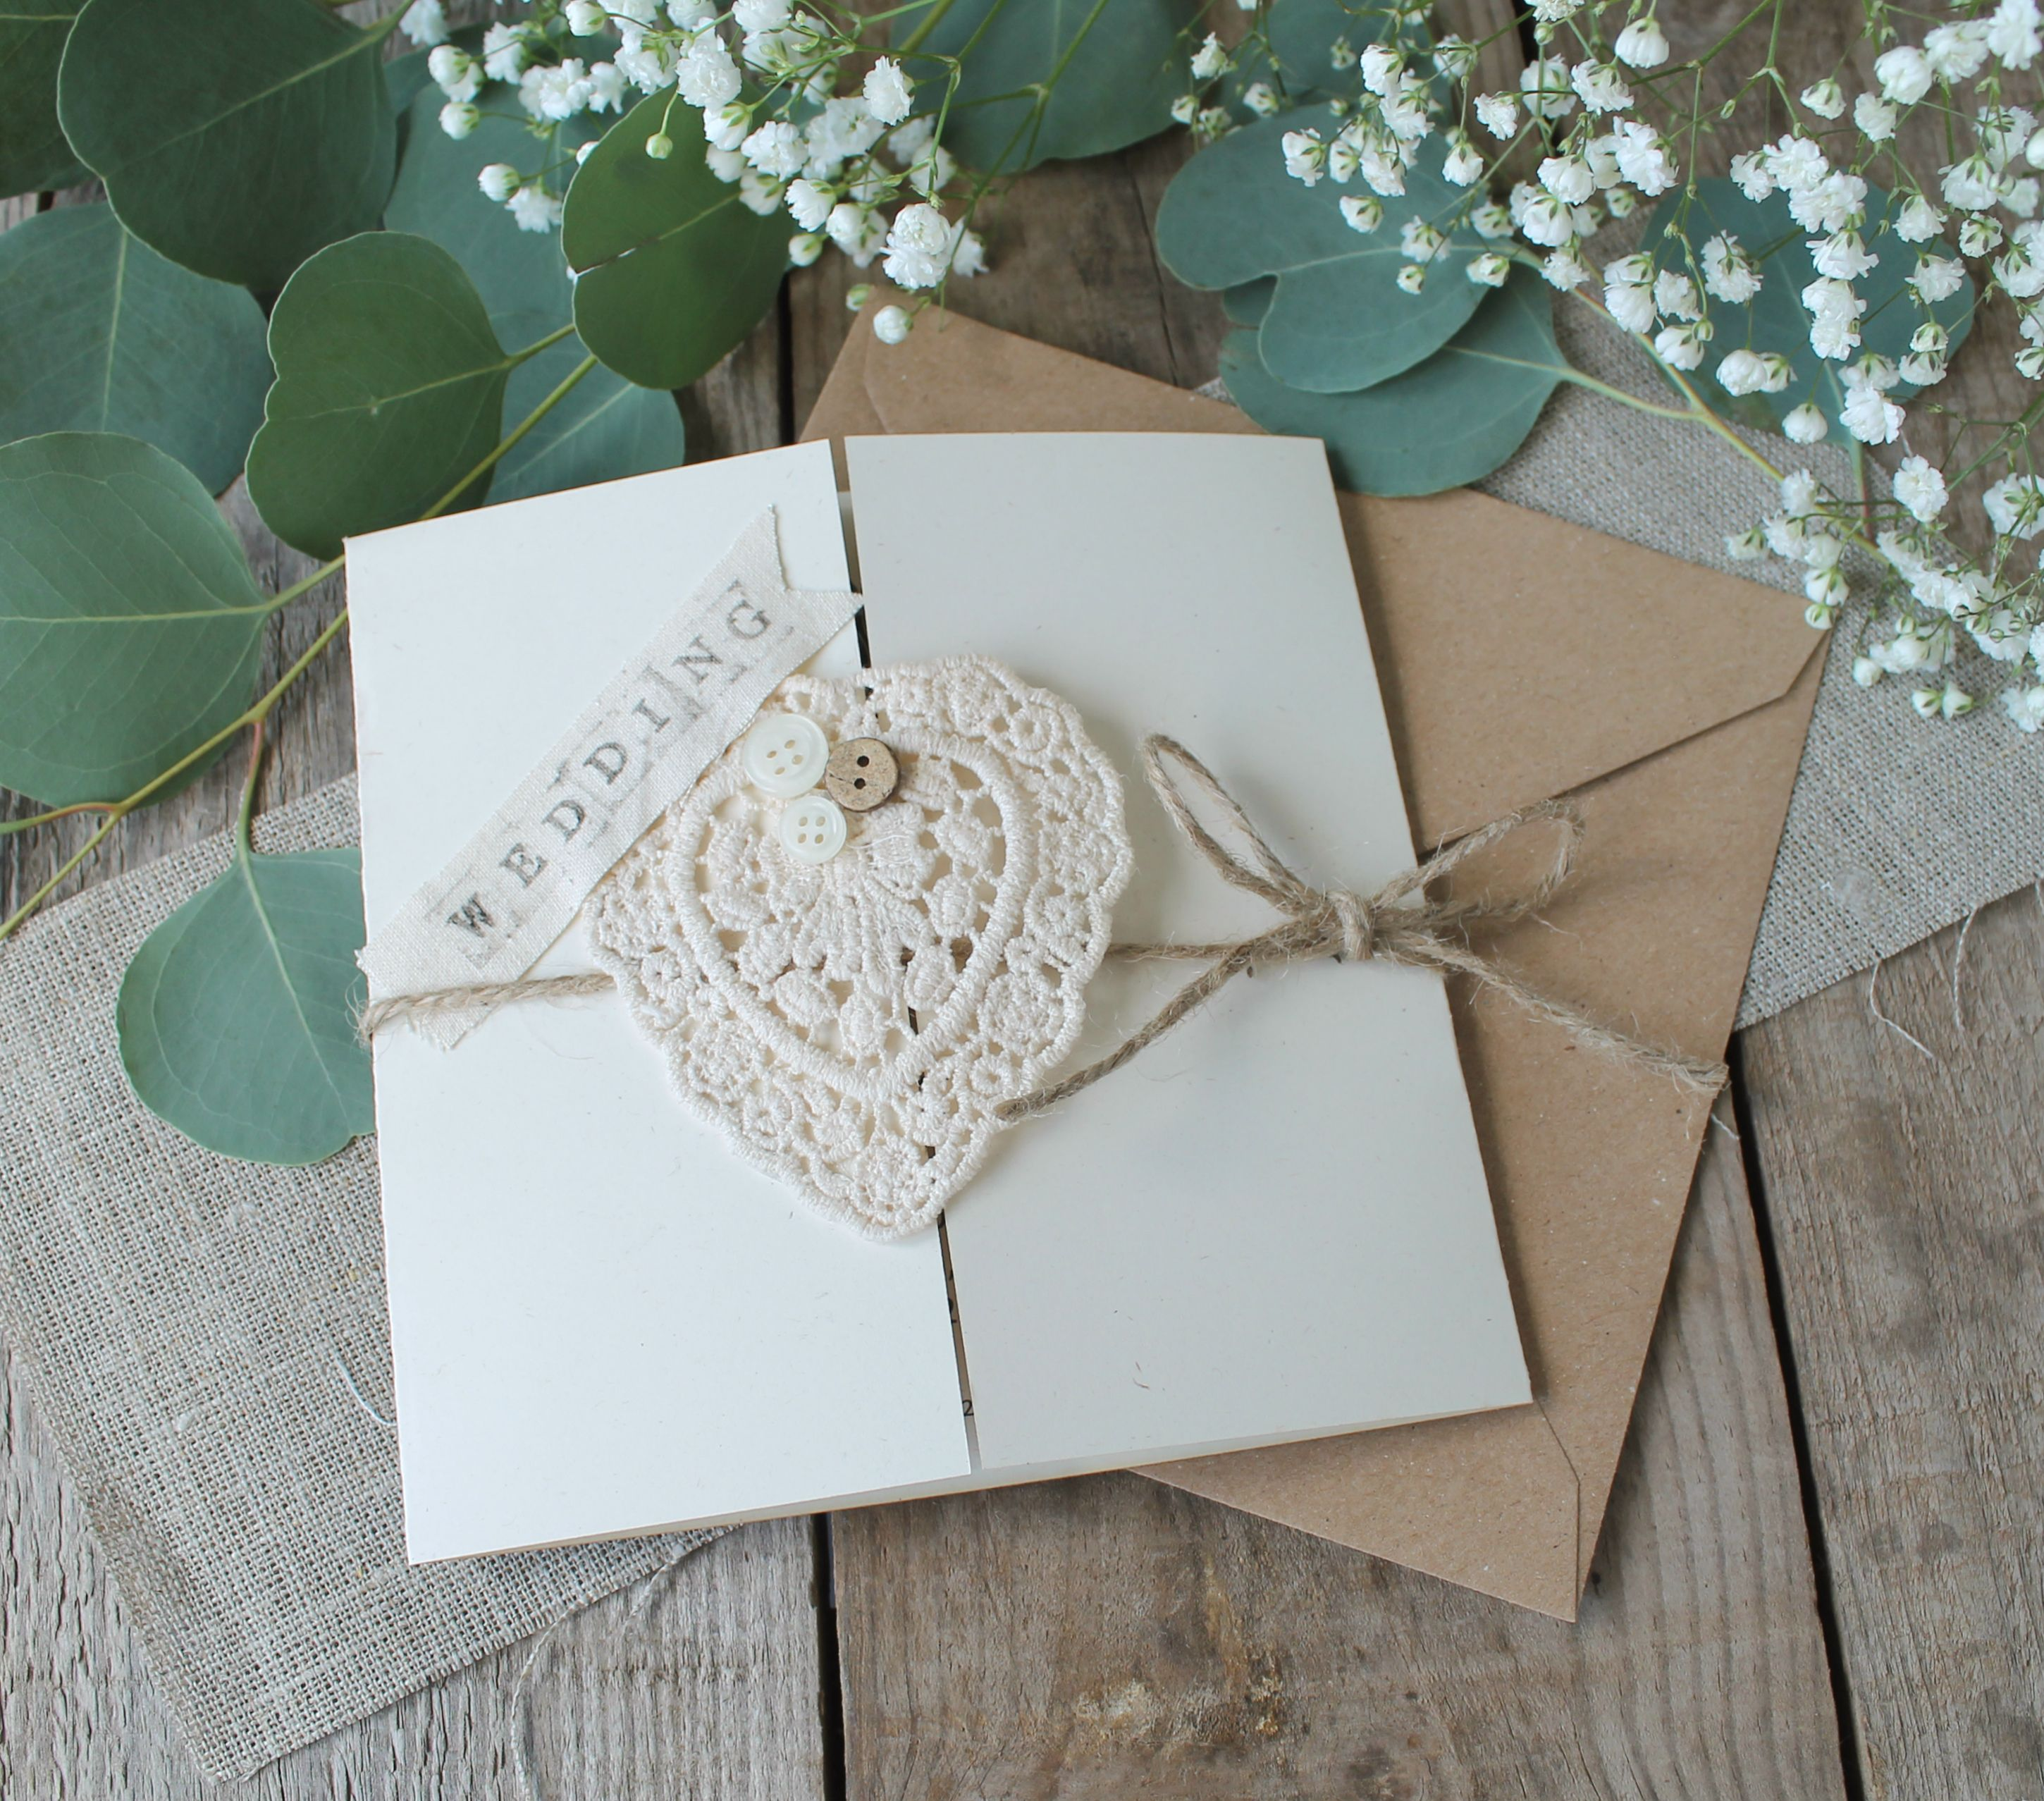 Crochet Wedding Invitations: Pretty Rustic Wedding Stationery With A Crochet Heart